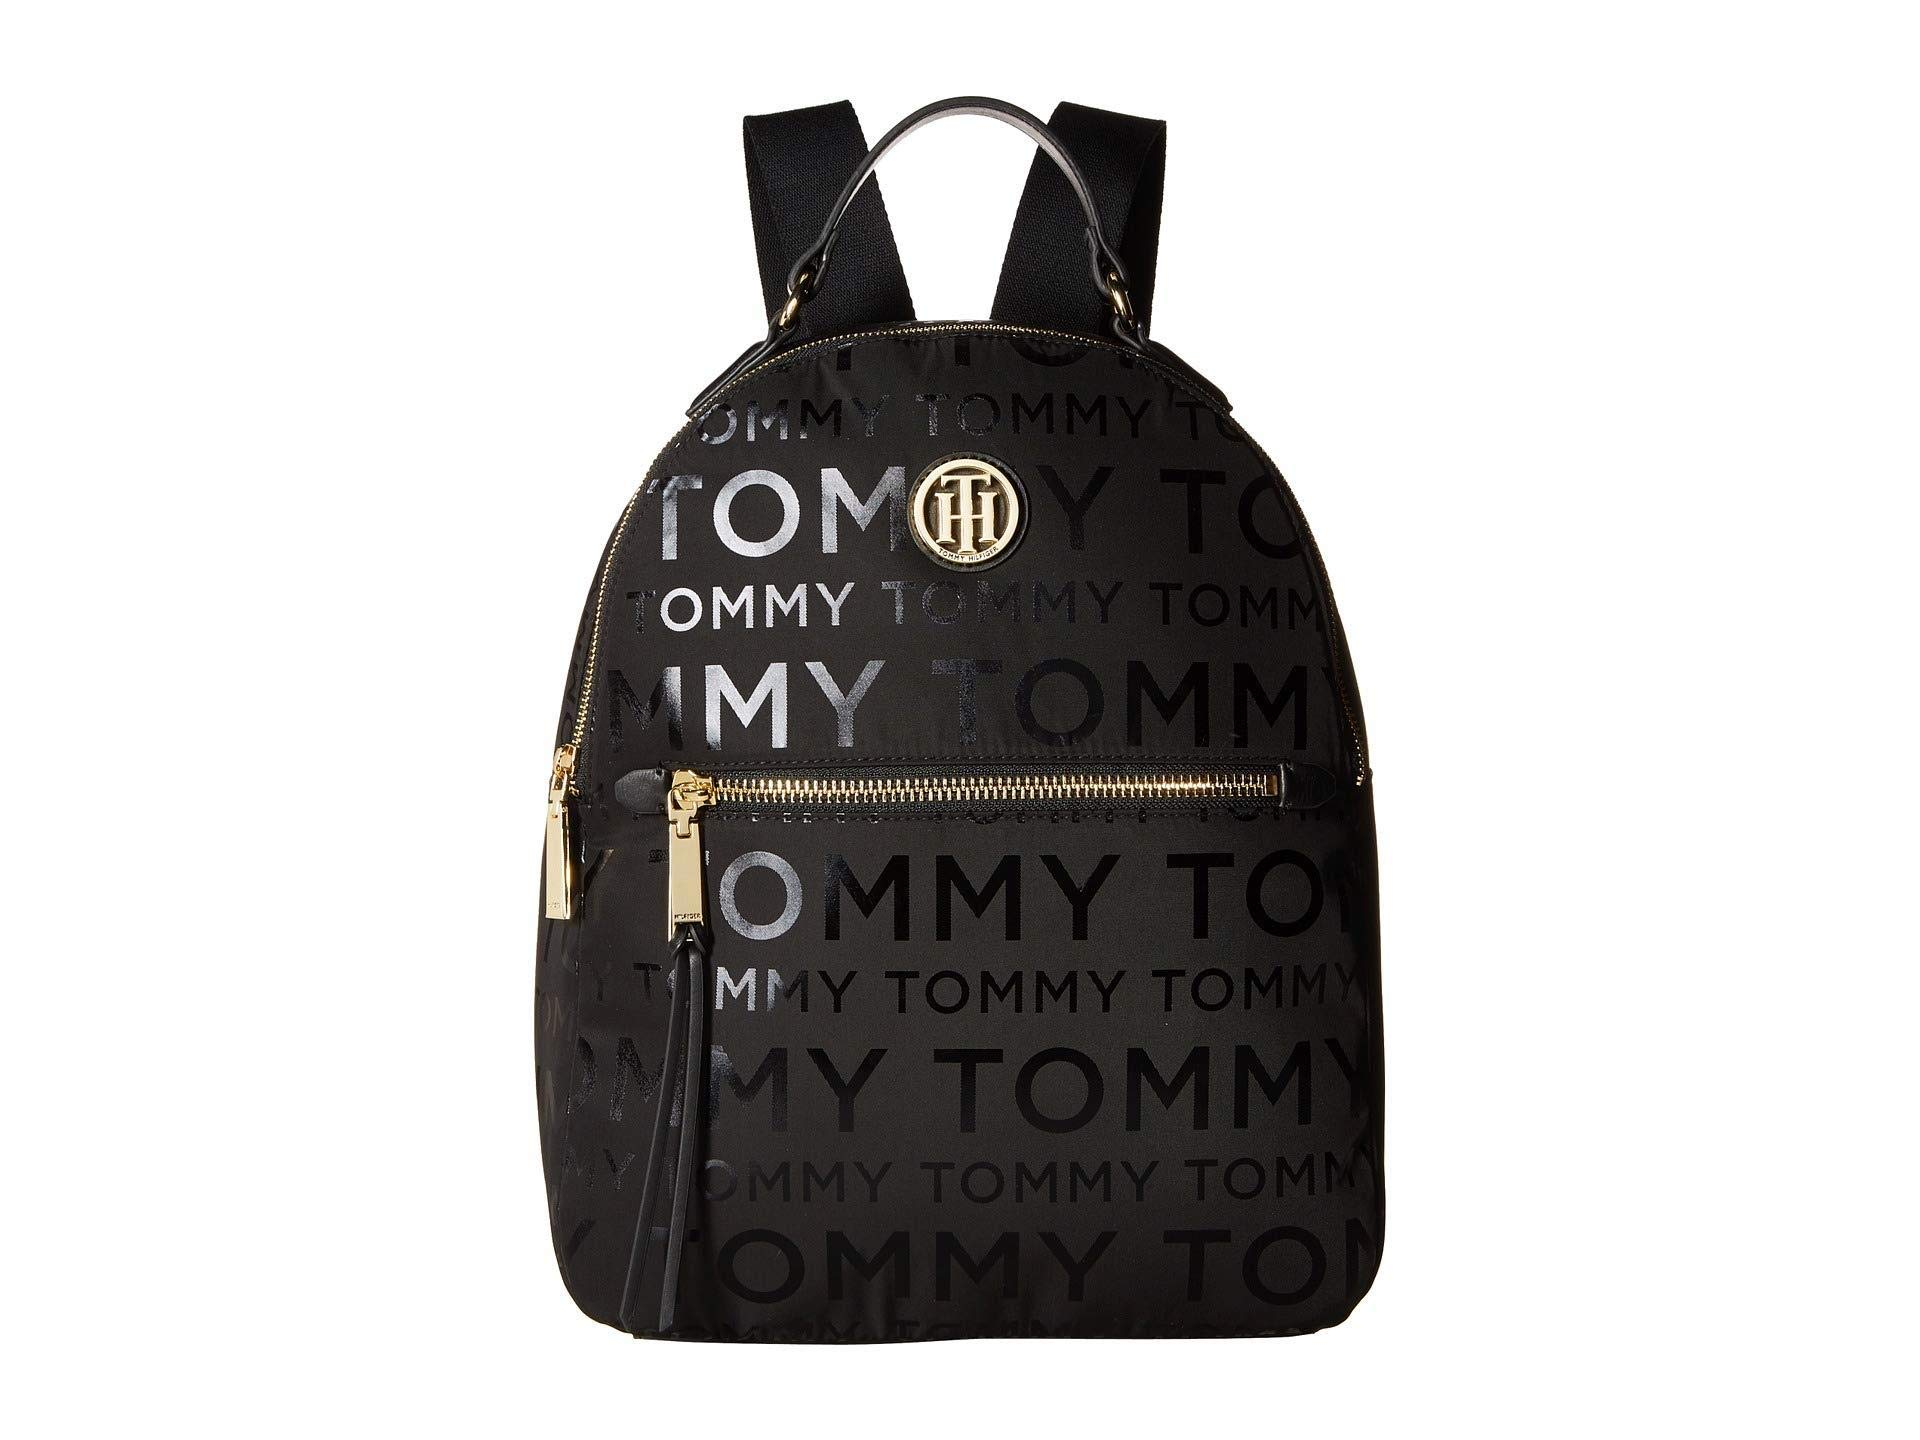 64c9ceab51 Galleon - Tommy Hilfiger Women's Shannon Backpack Black One Size